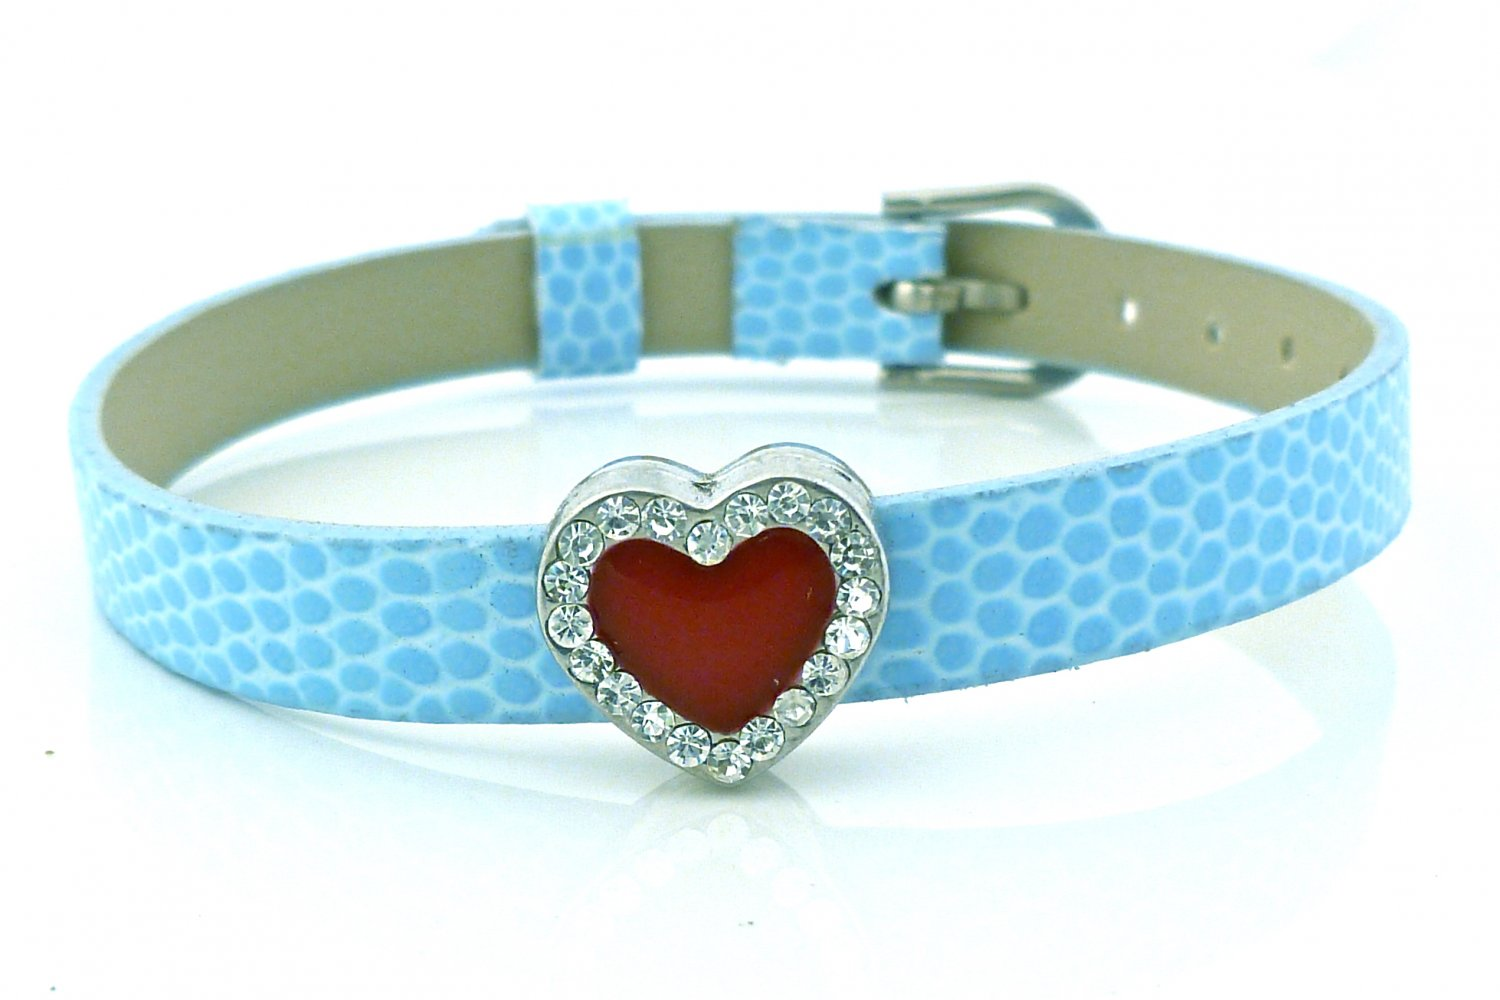 Heart Rhinestone Belt Buckle Style Slide Charm Bracelet - Cornflower Blue